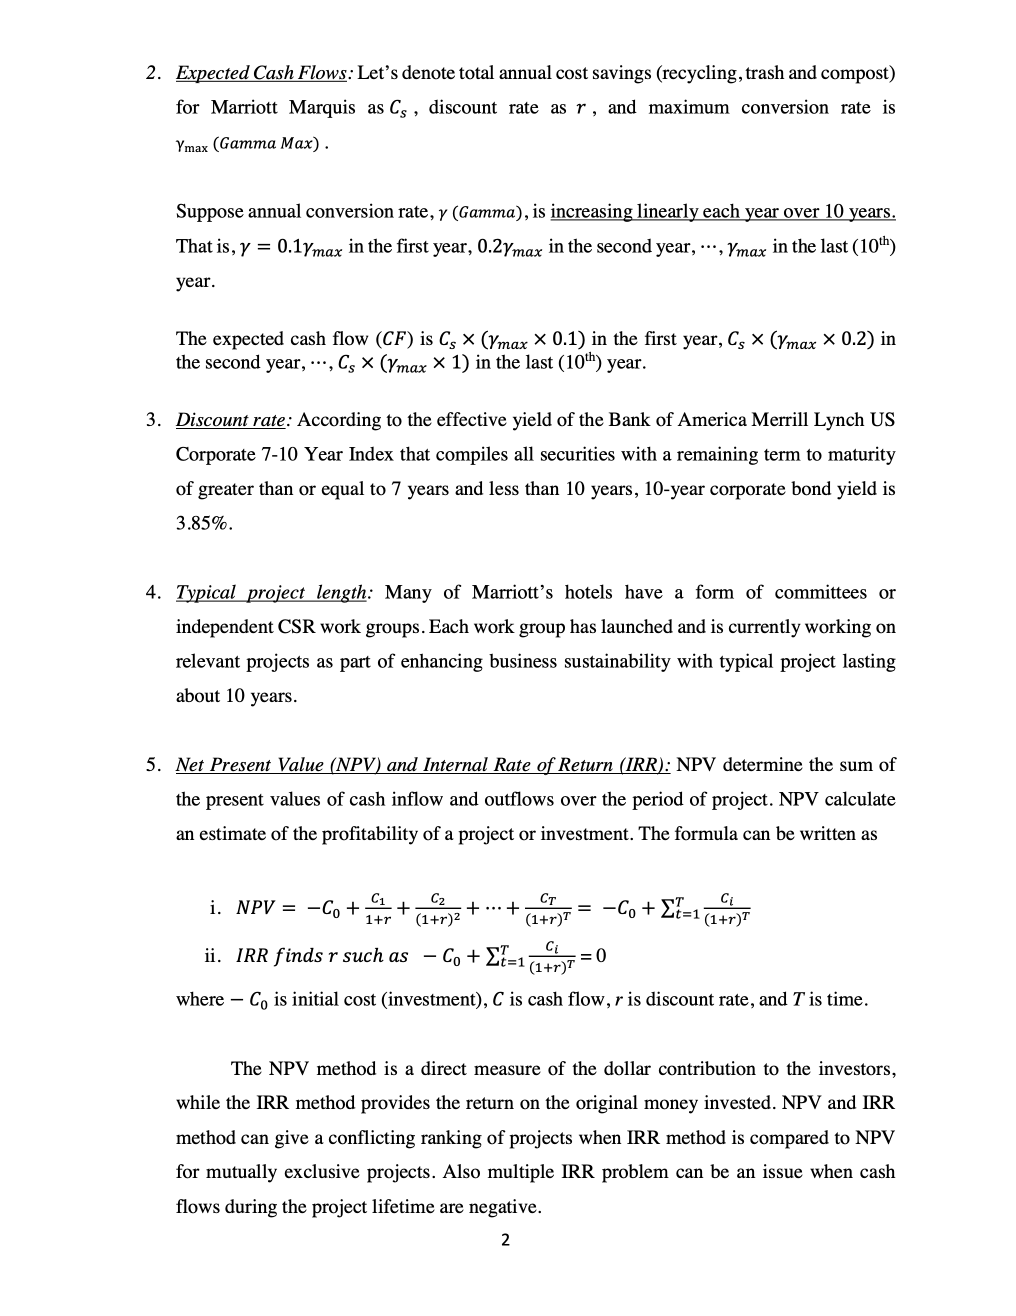 How Do I Write An Efficient Report On This, And An